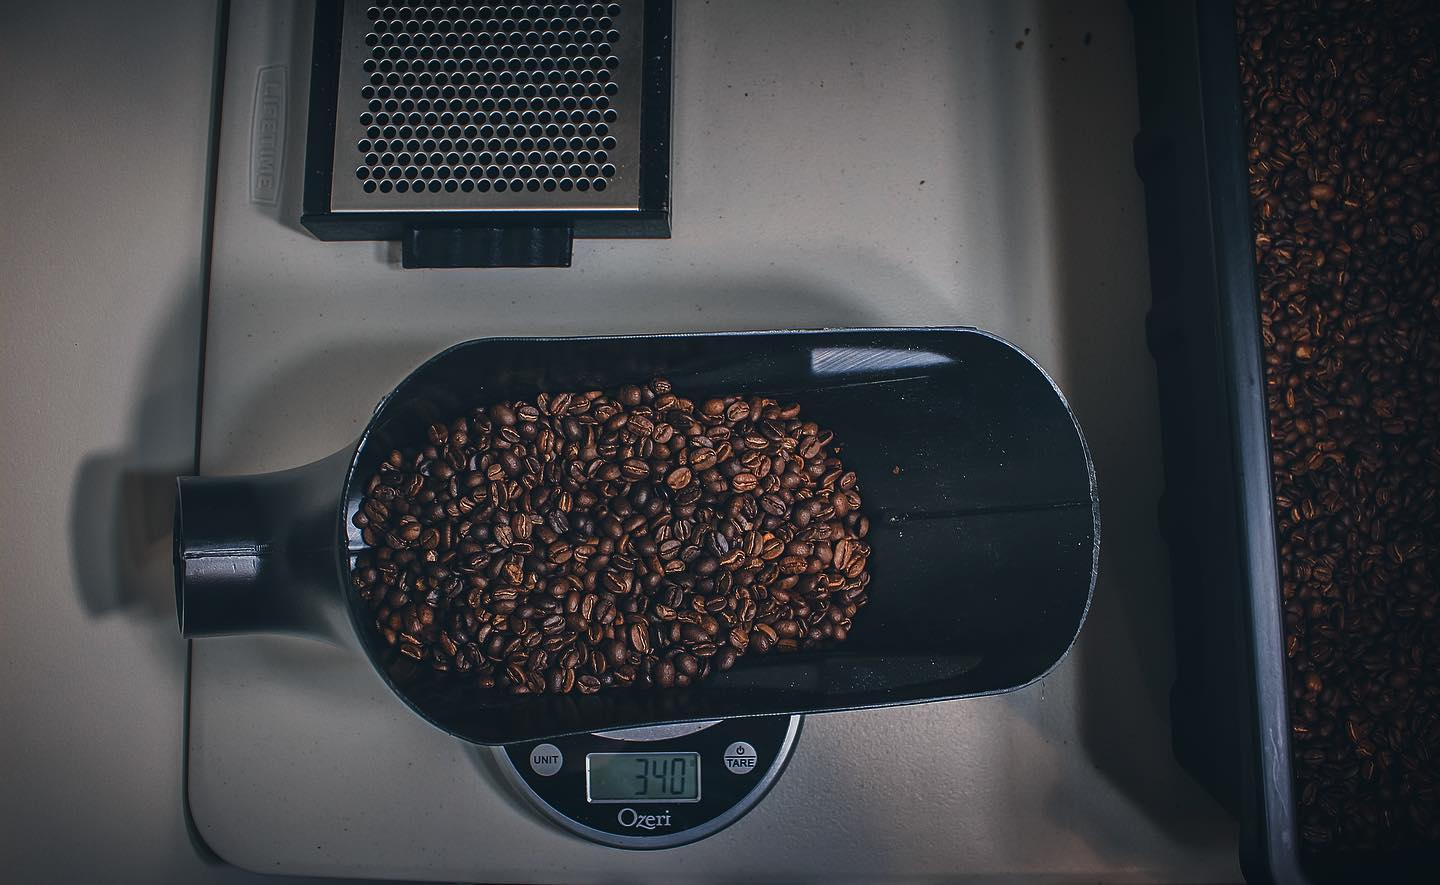 A coffee scale with 340 grams of Common Sense Coffee's Washington Roast on it. This was the company's first coffee to be sent to a customer.